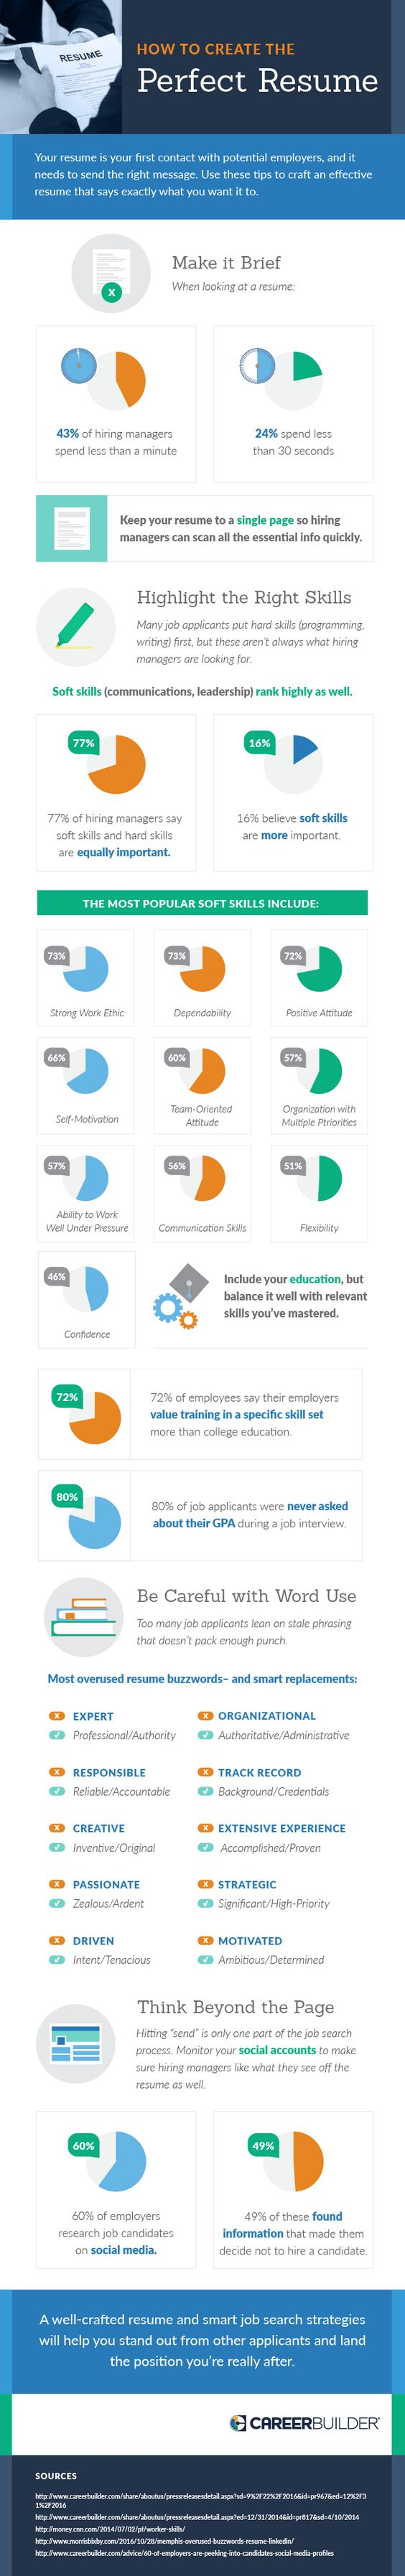 Most hiring managers spend less than 30 seconds looking at a CV_this infographic by CareerBuilder via CopyPress shows you how to build a perfect resume!